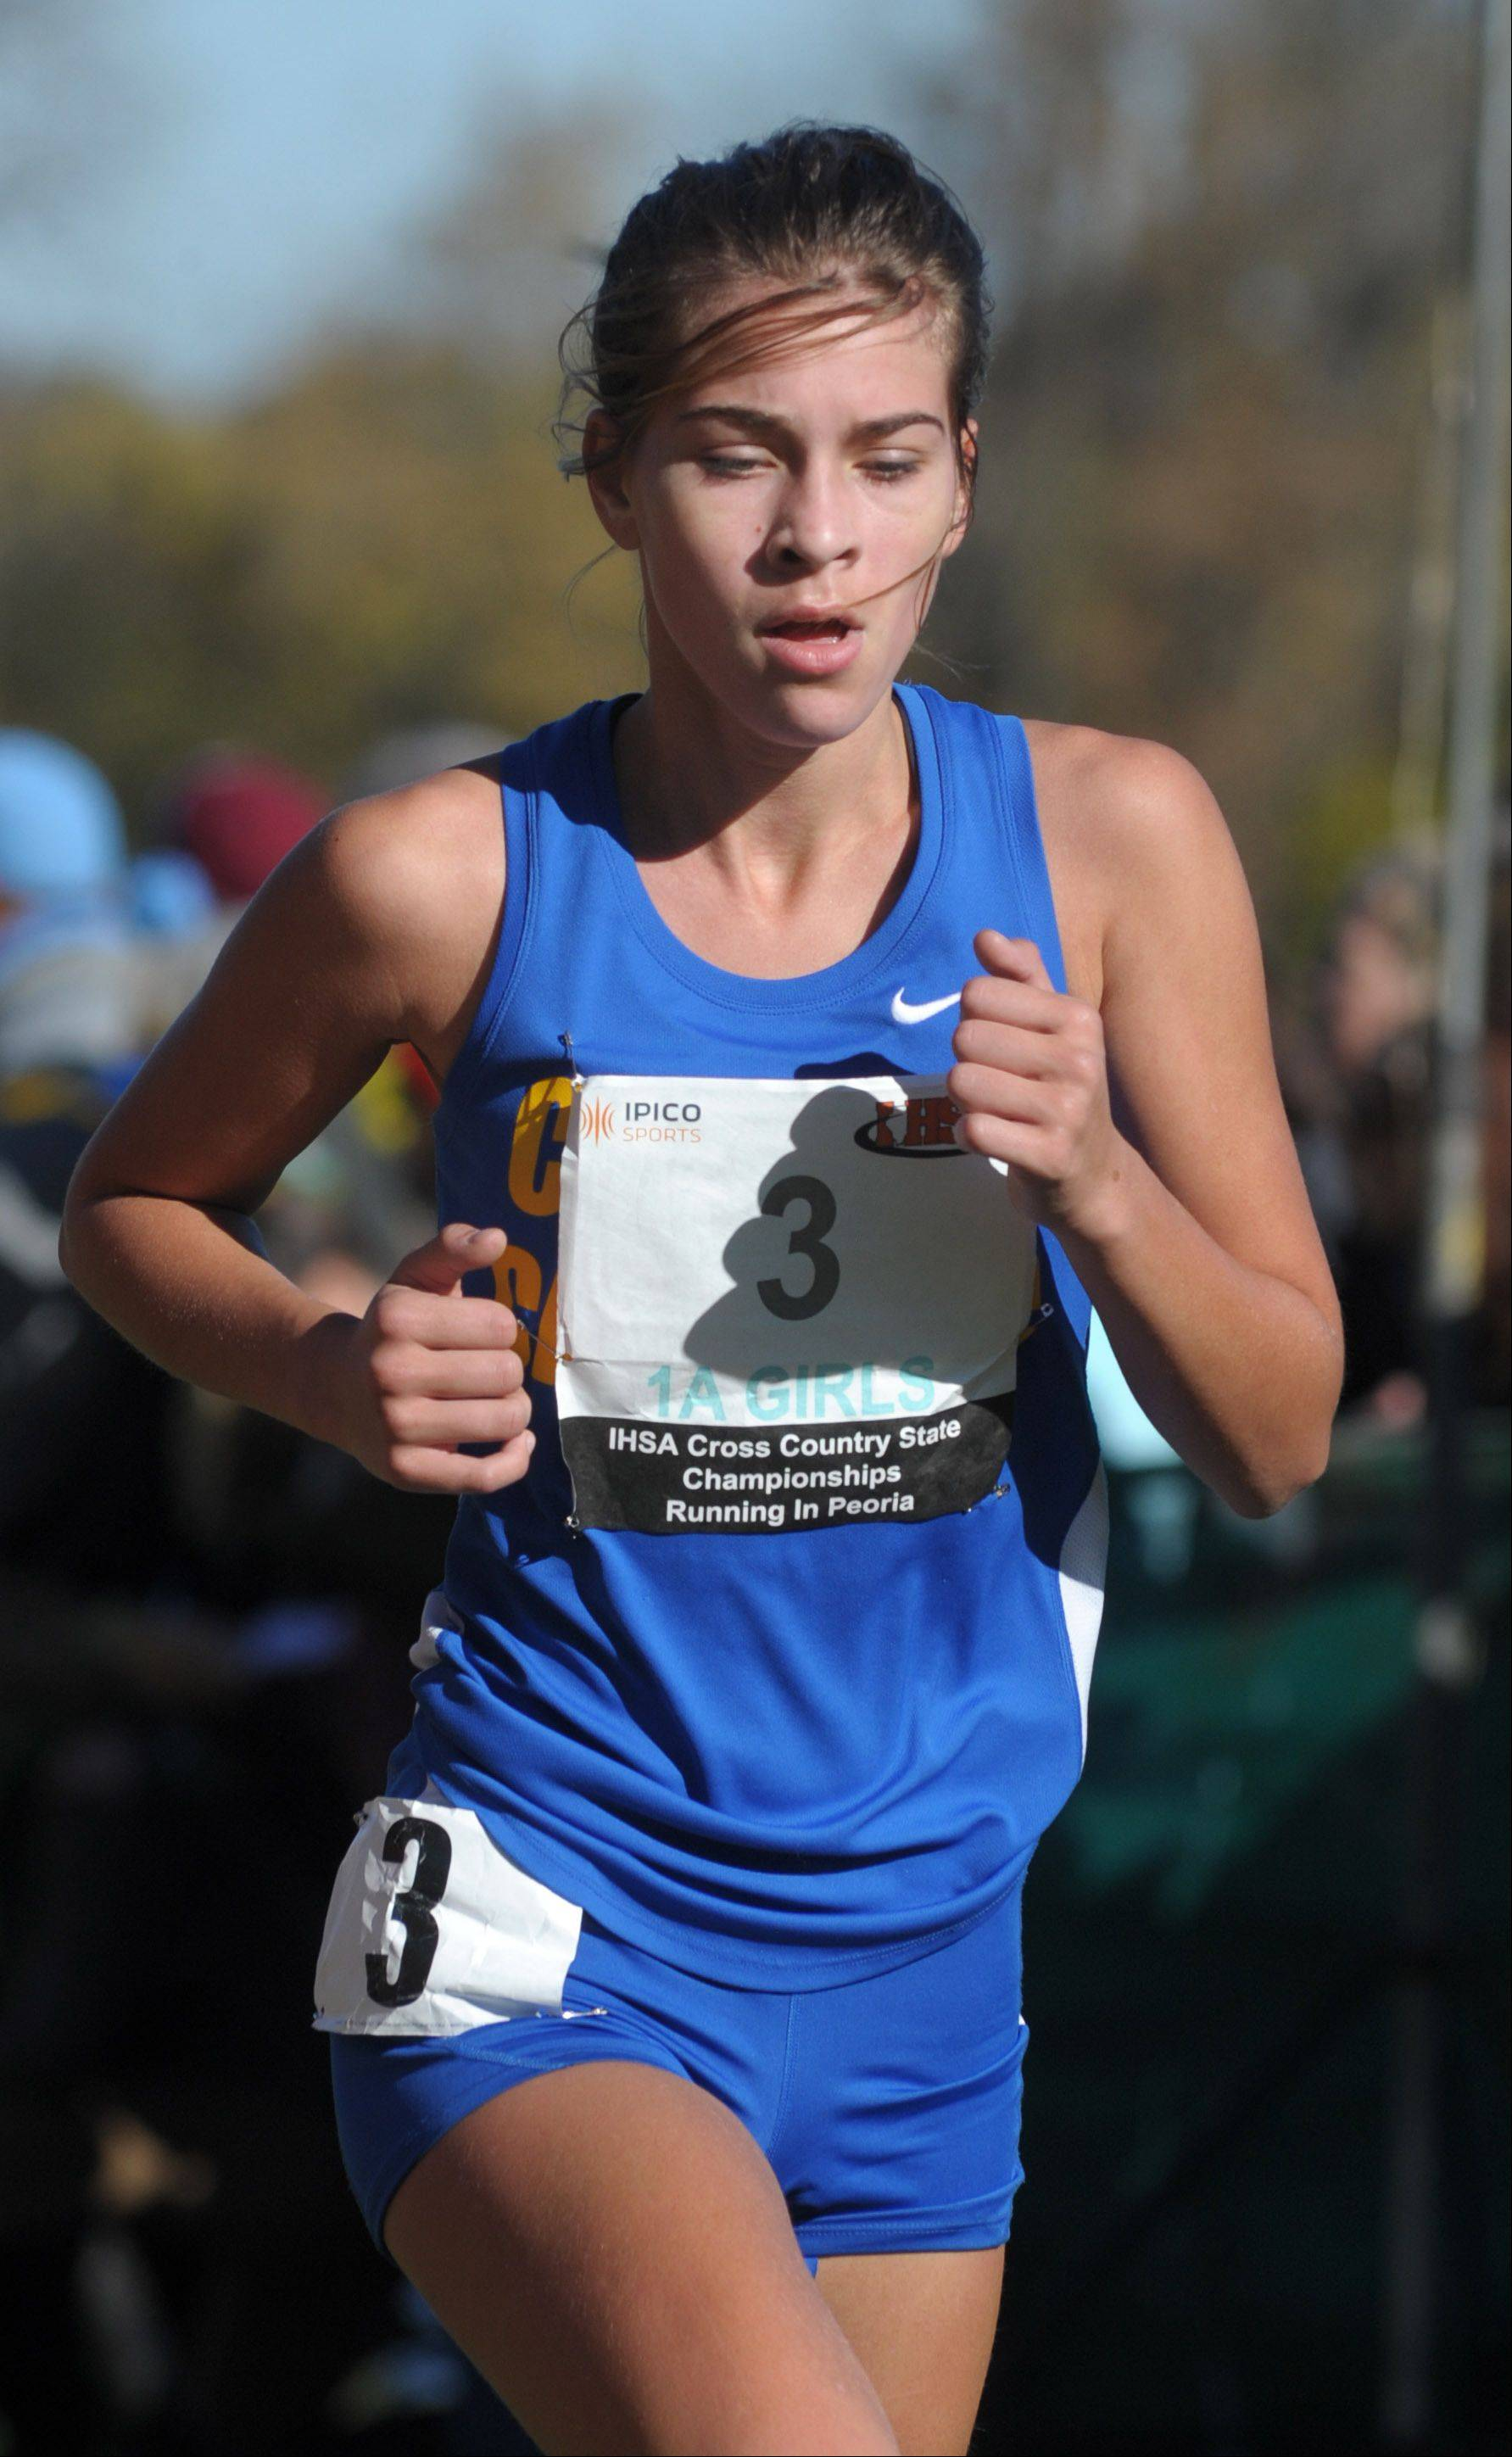 Aurora Central Catholic's Irene Crown nears the finish line to take 68th place in the Class 1A IHSA cross country state final at Detweiller Park in Peoria on Saturday, November 9.